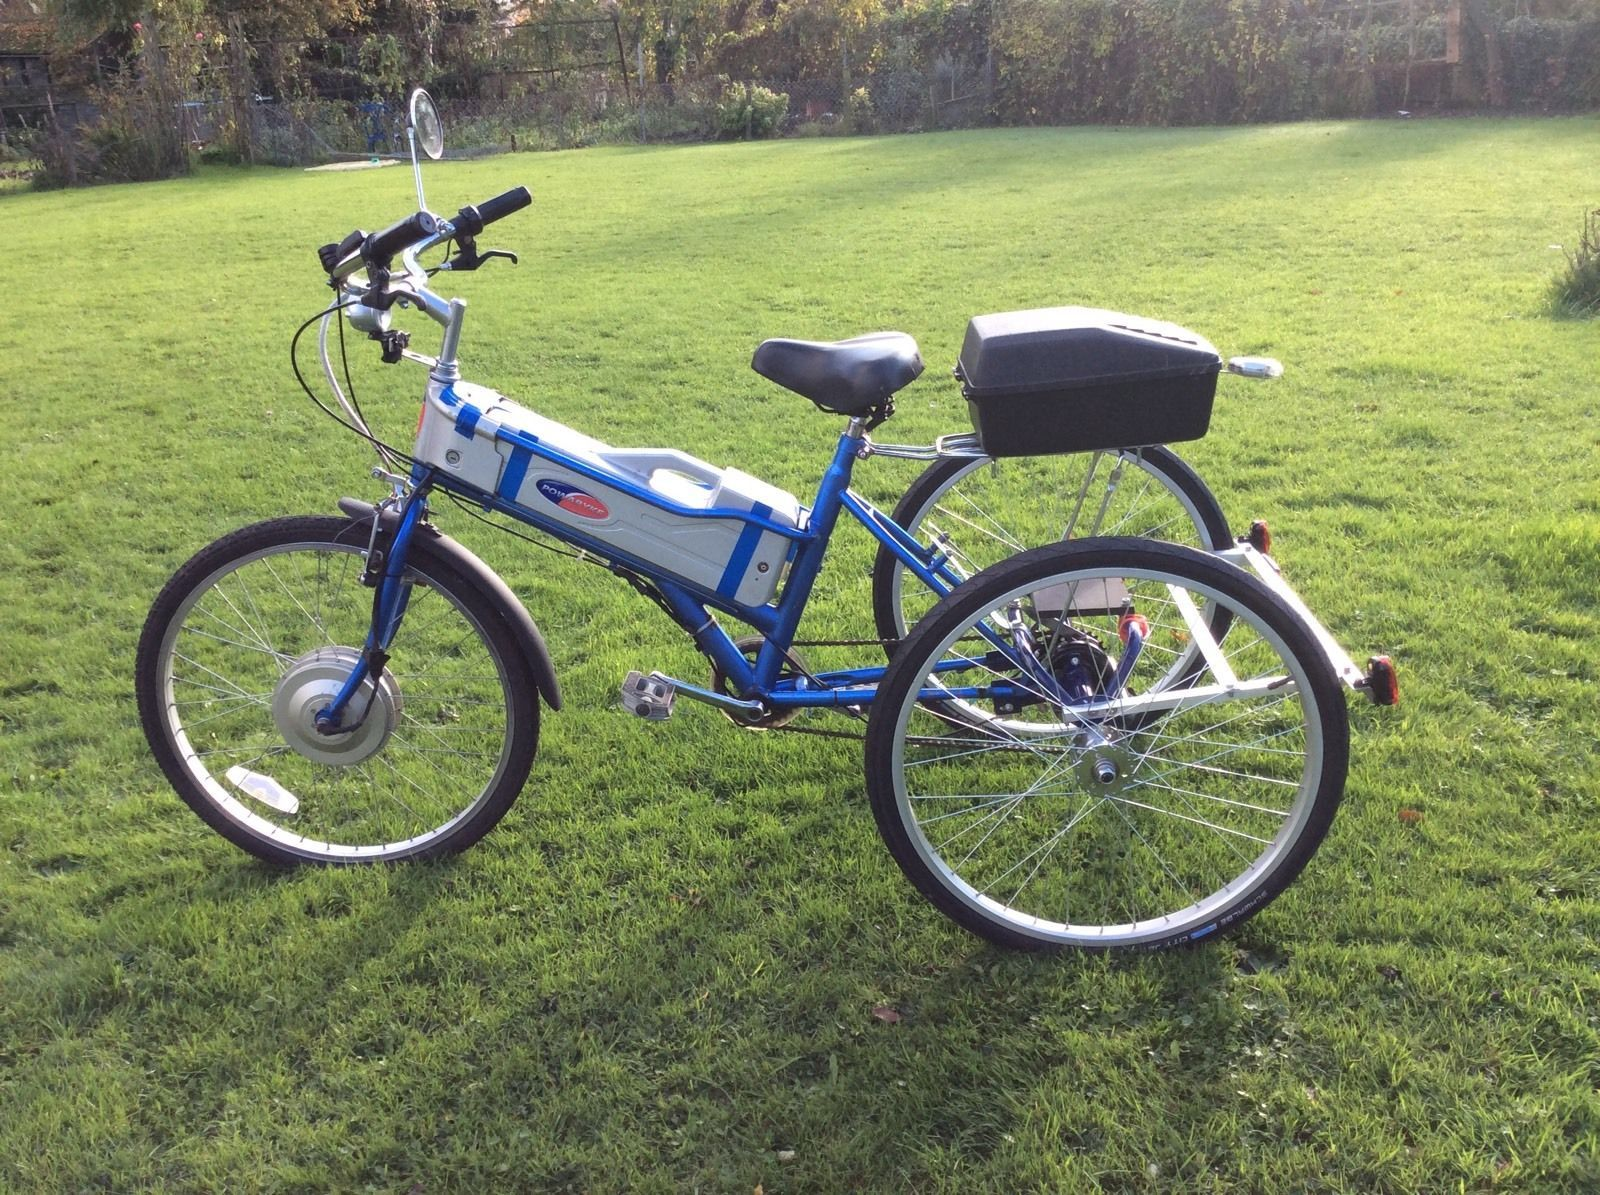 Euro Powabyke 5 Speed Electric Tricycle Battery Operated